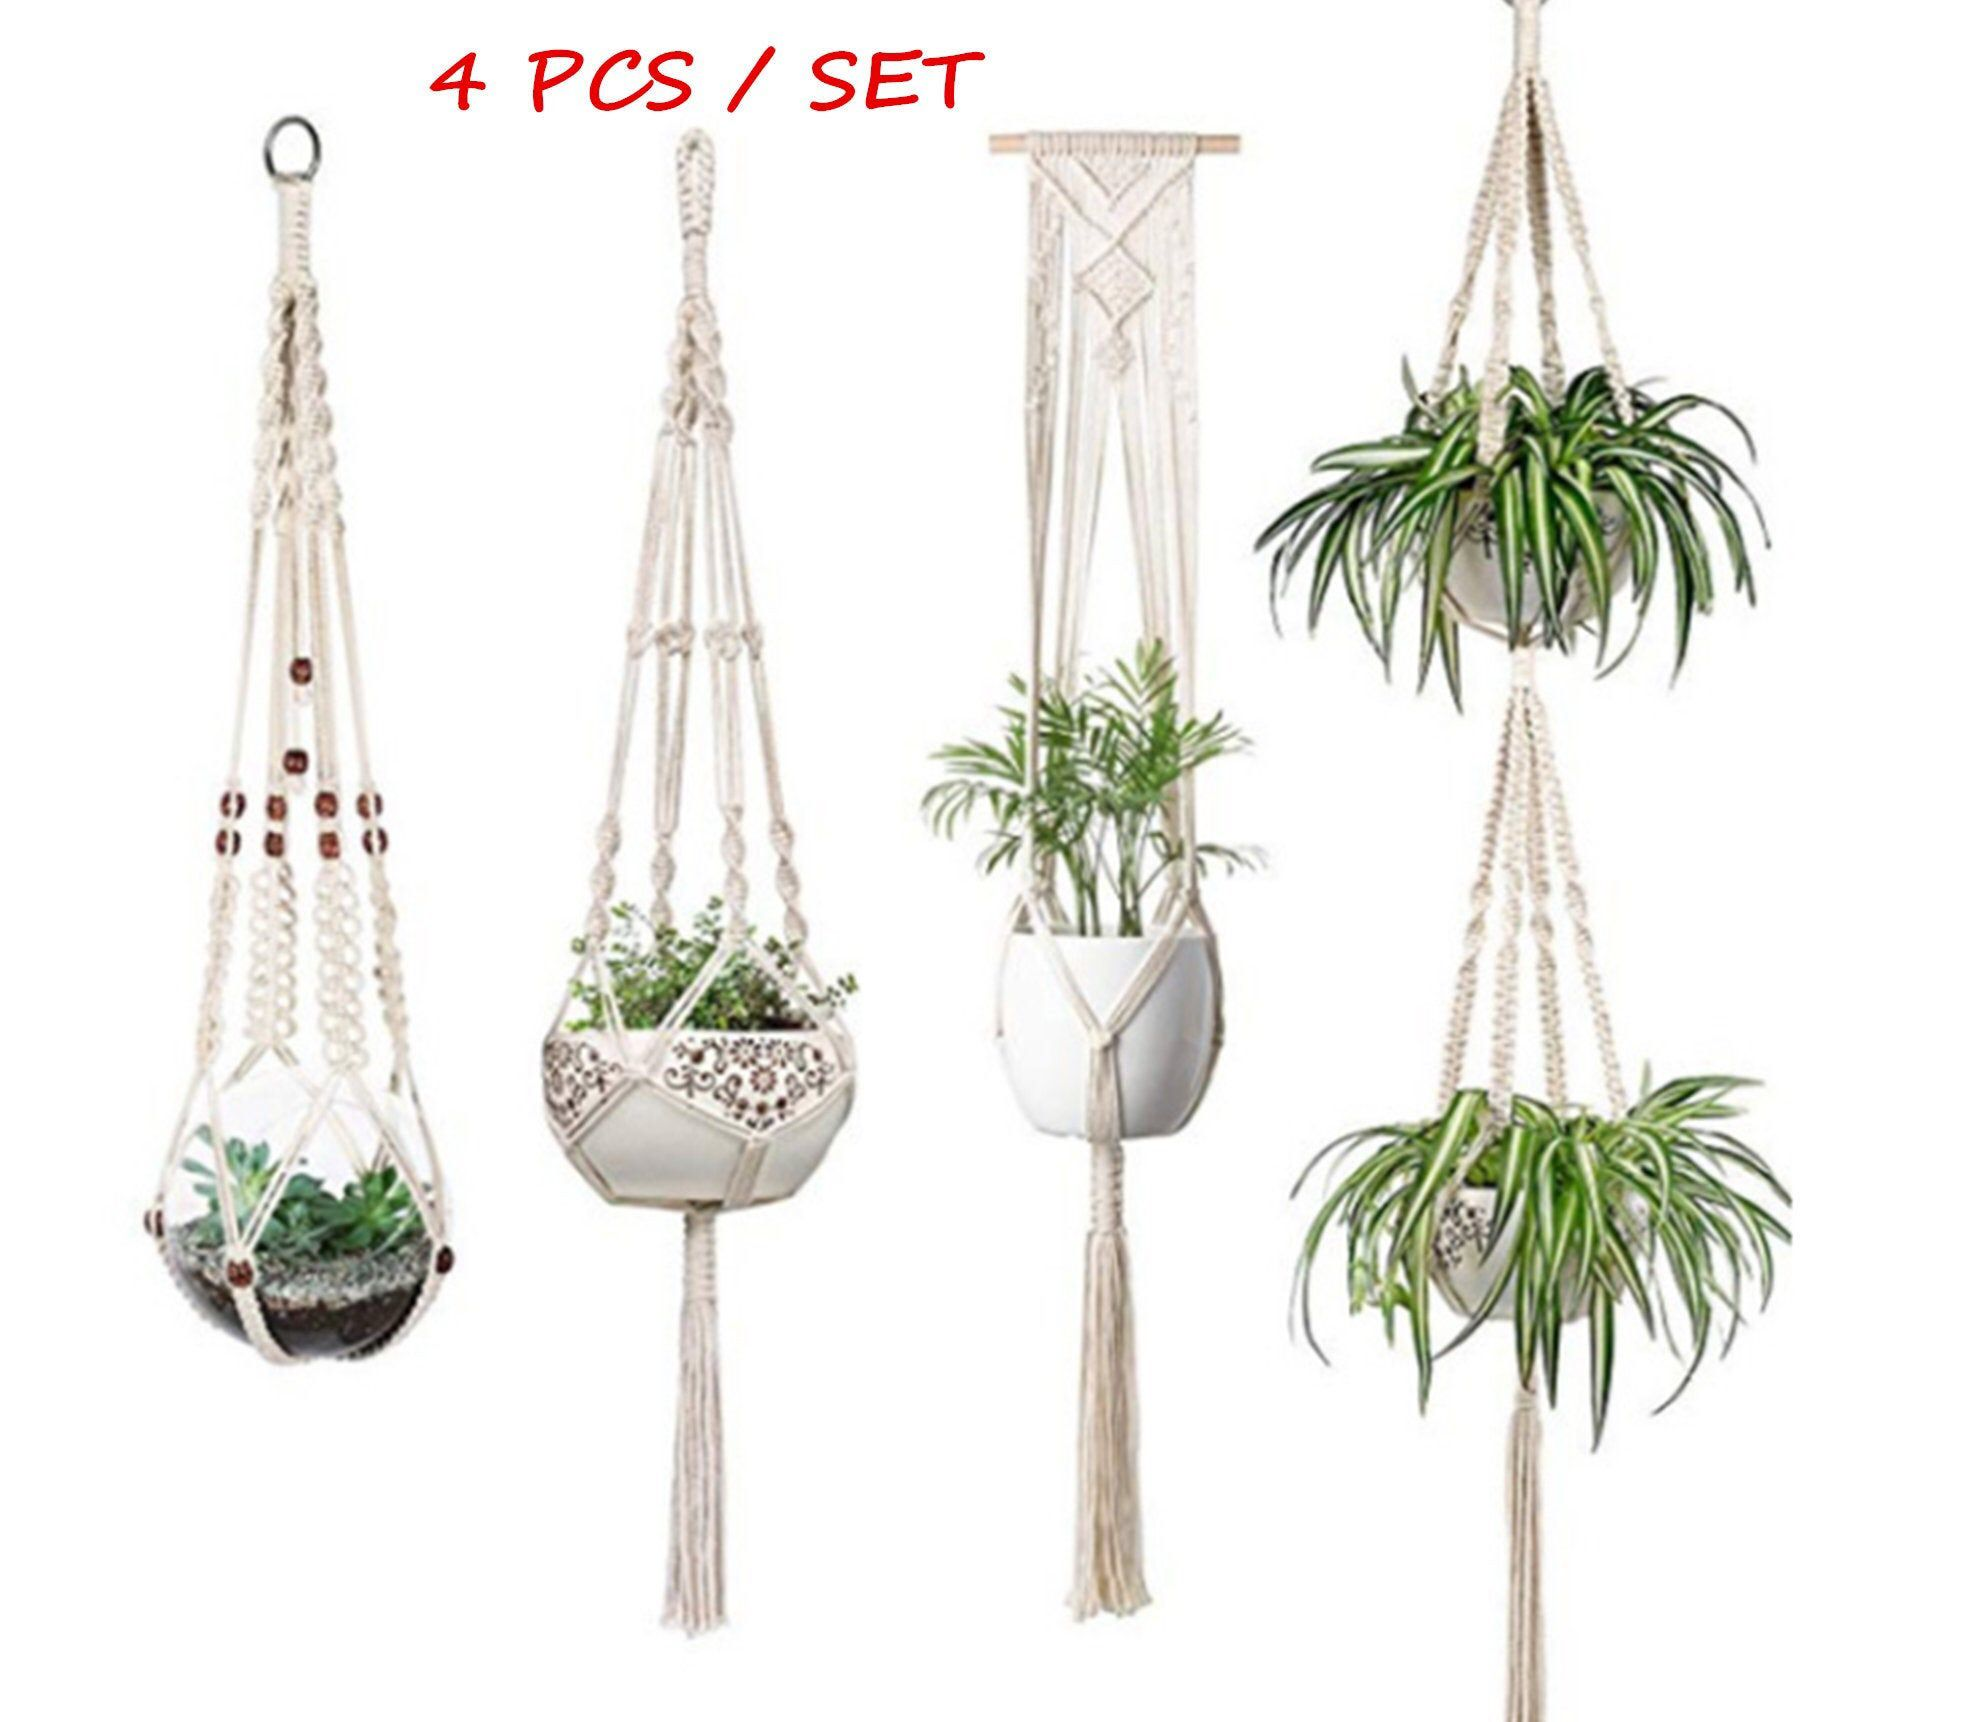 Pin By Anita Schneider On Diy Crafts Hanging Plants Indoor Macrame Plant Hangers Flower Pot Holder